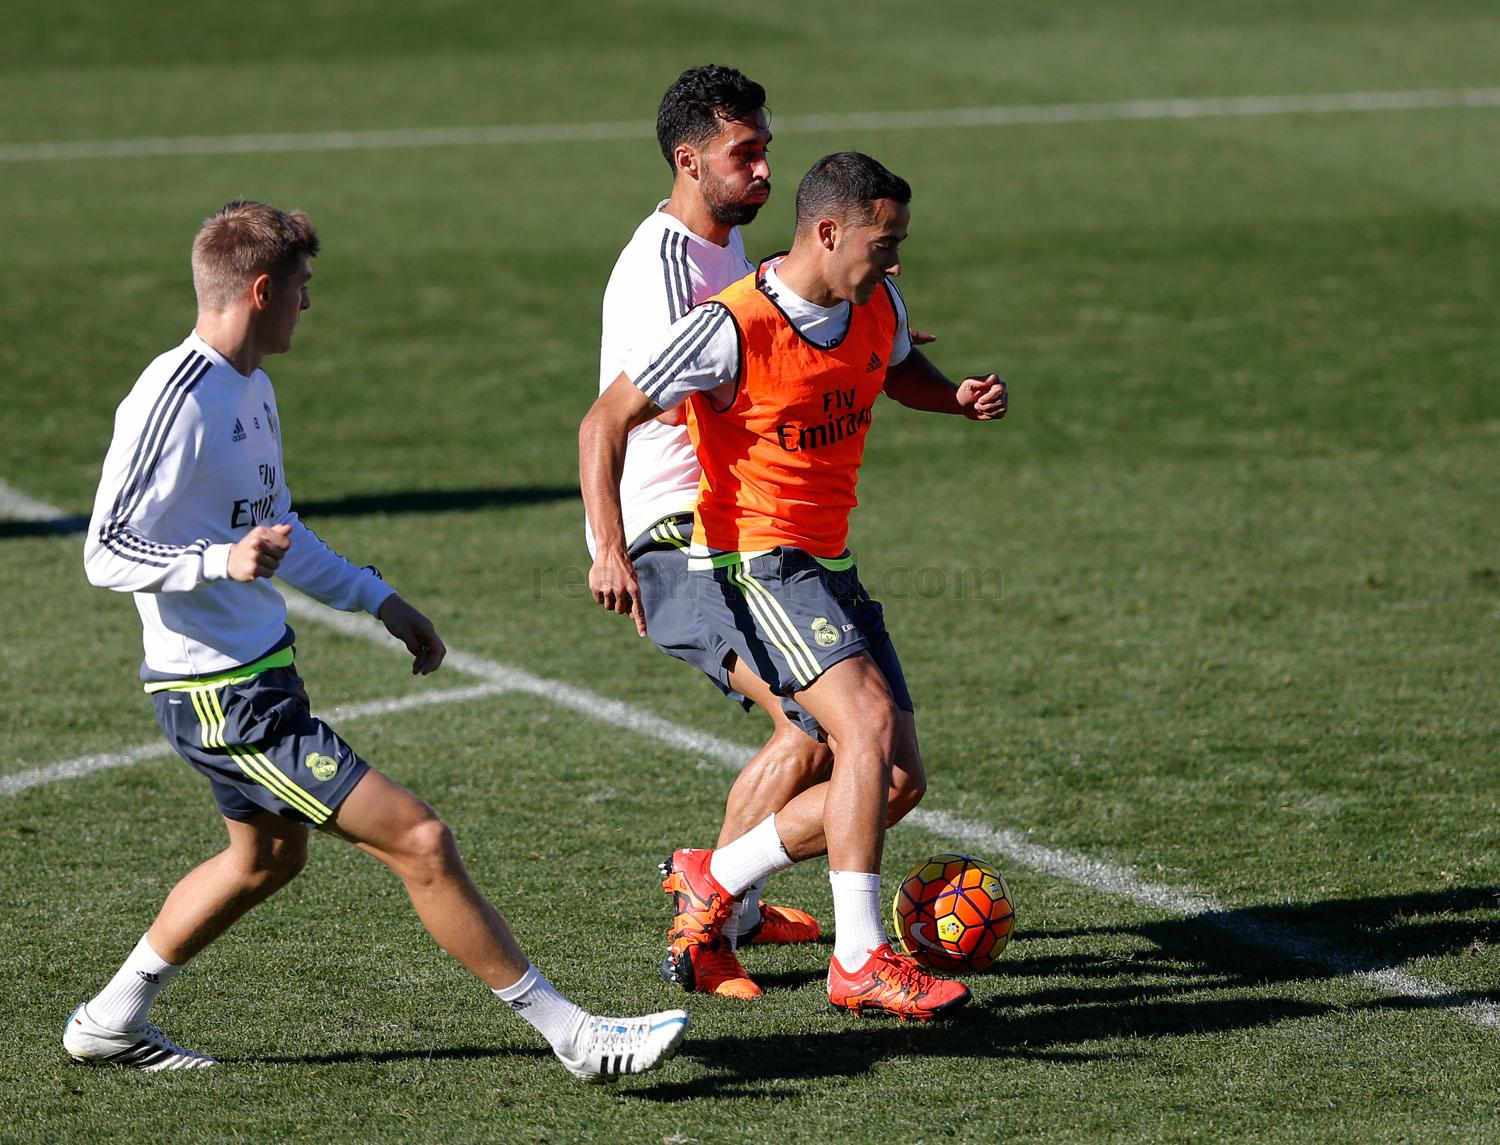 Real Madrid - Entrenamiento del Real Madrid - 11-11-2015